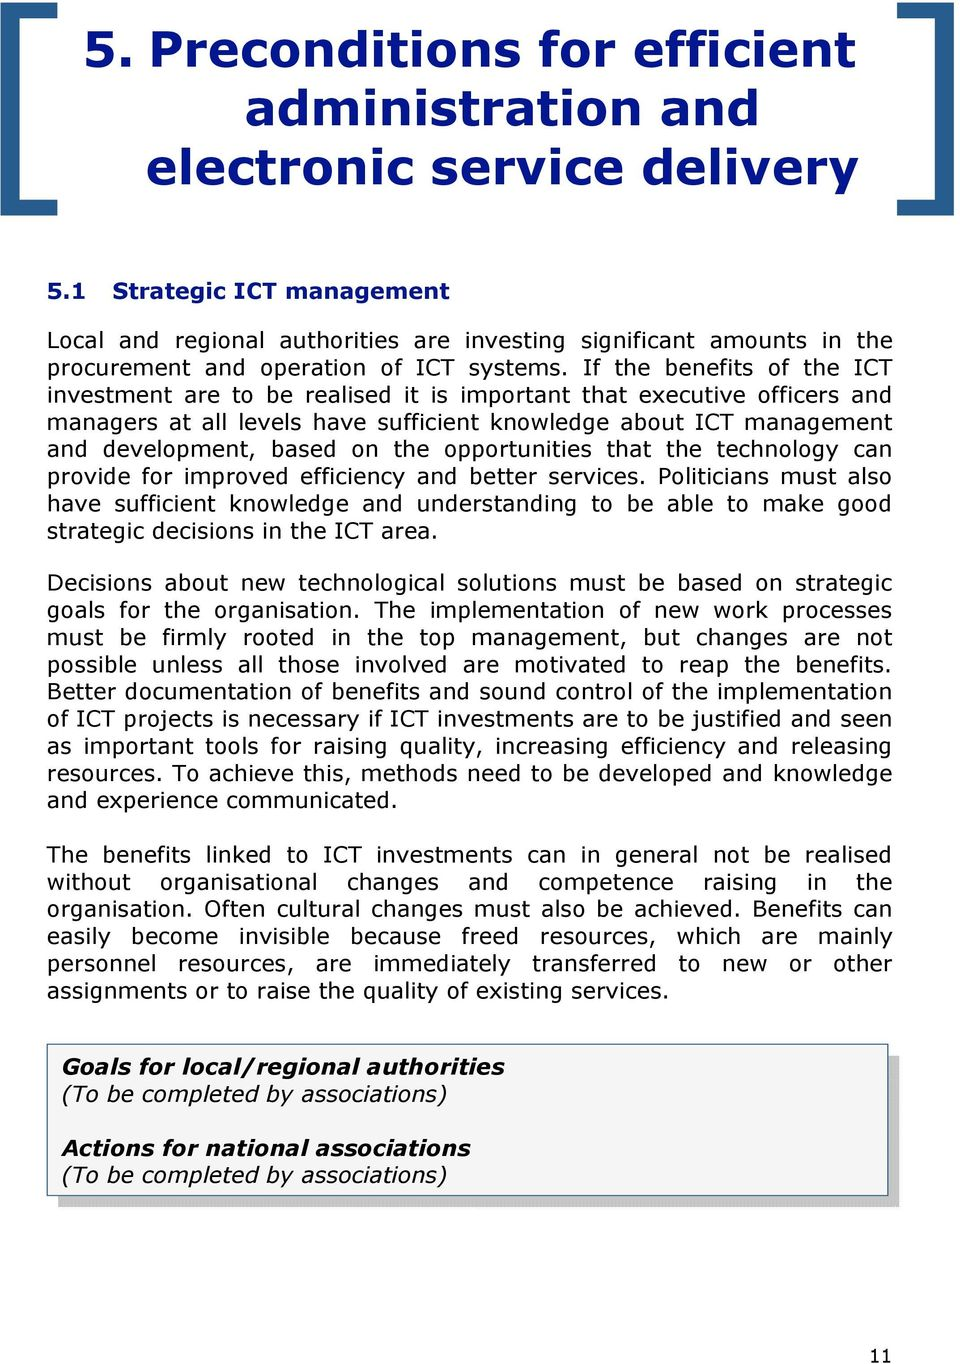 If the benefits of the ICT investment are to be realised it is important that executive officers and managers at all levels have sufficient knowledge about ICT management and development, based on